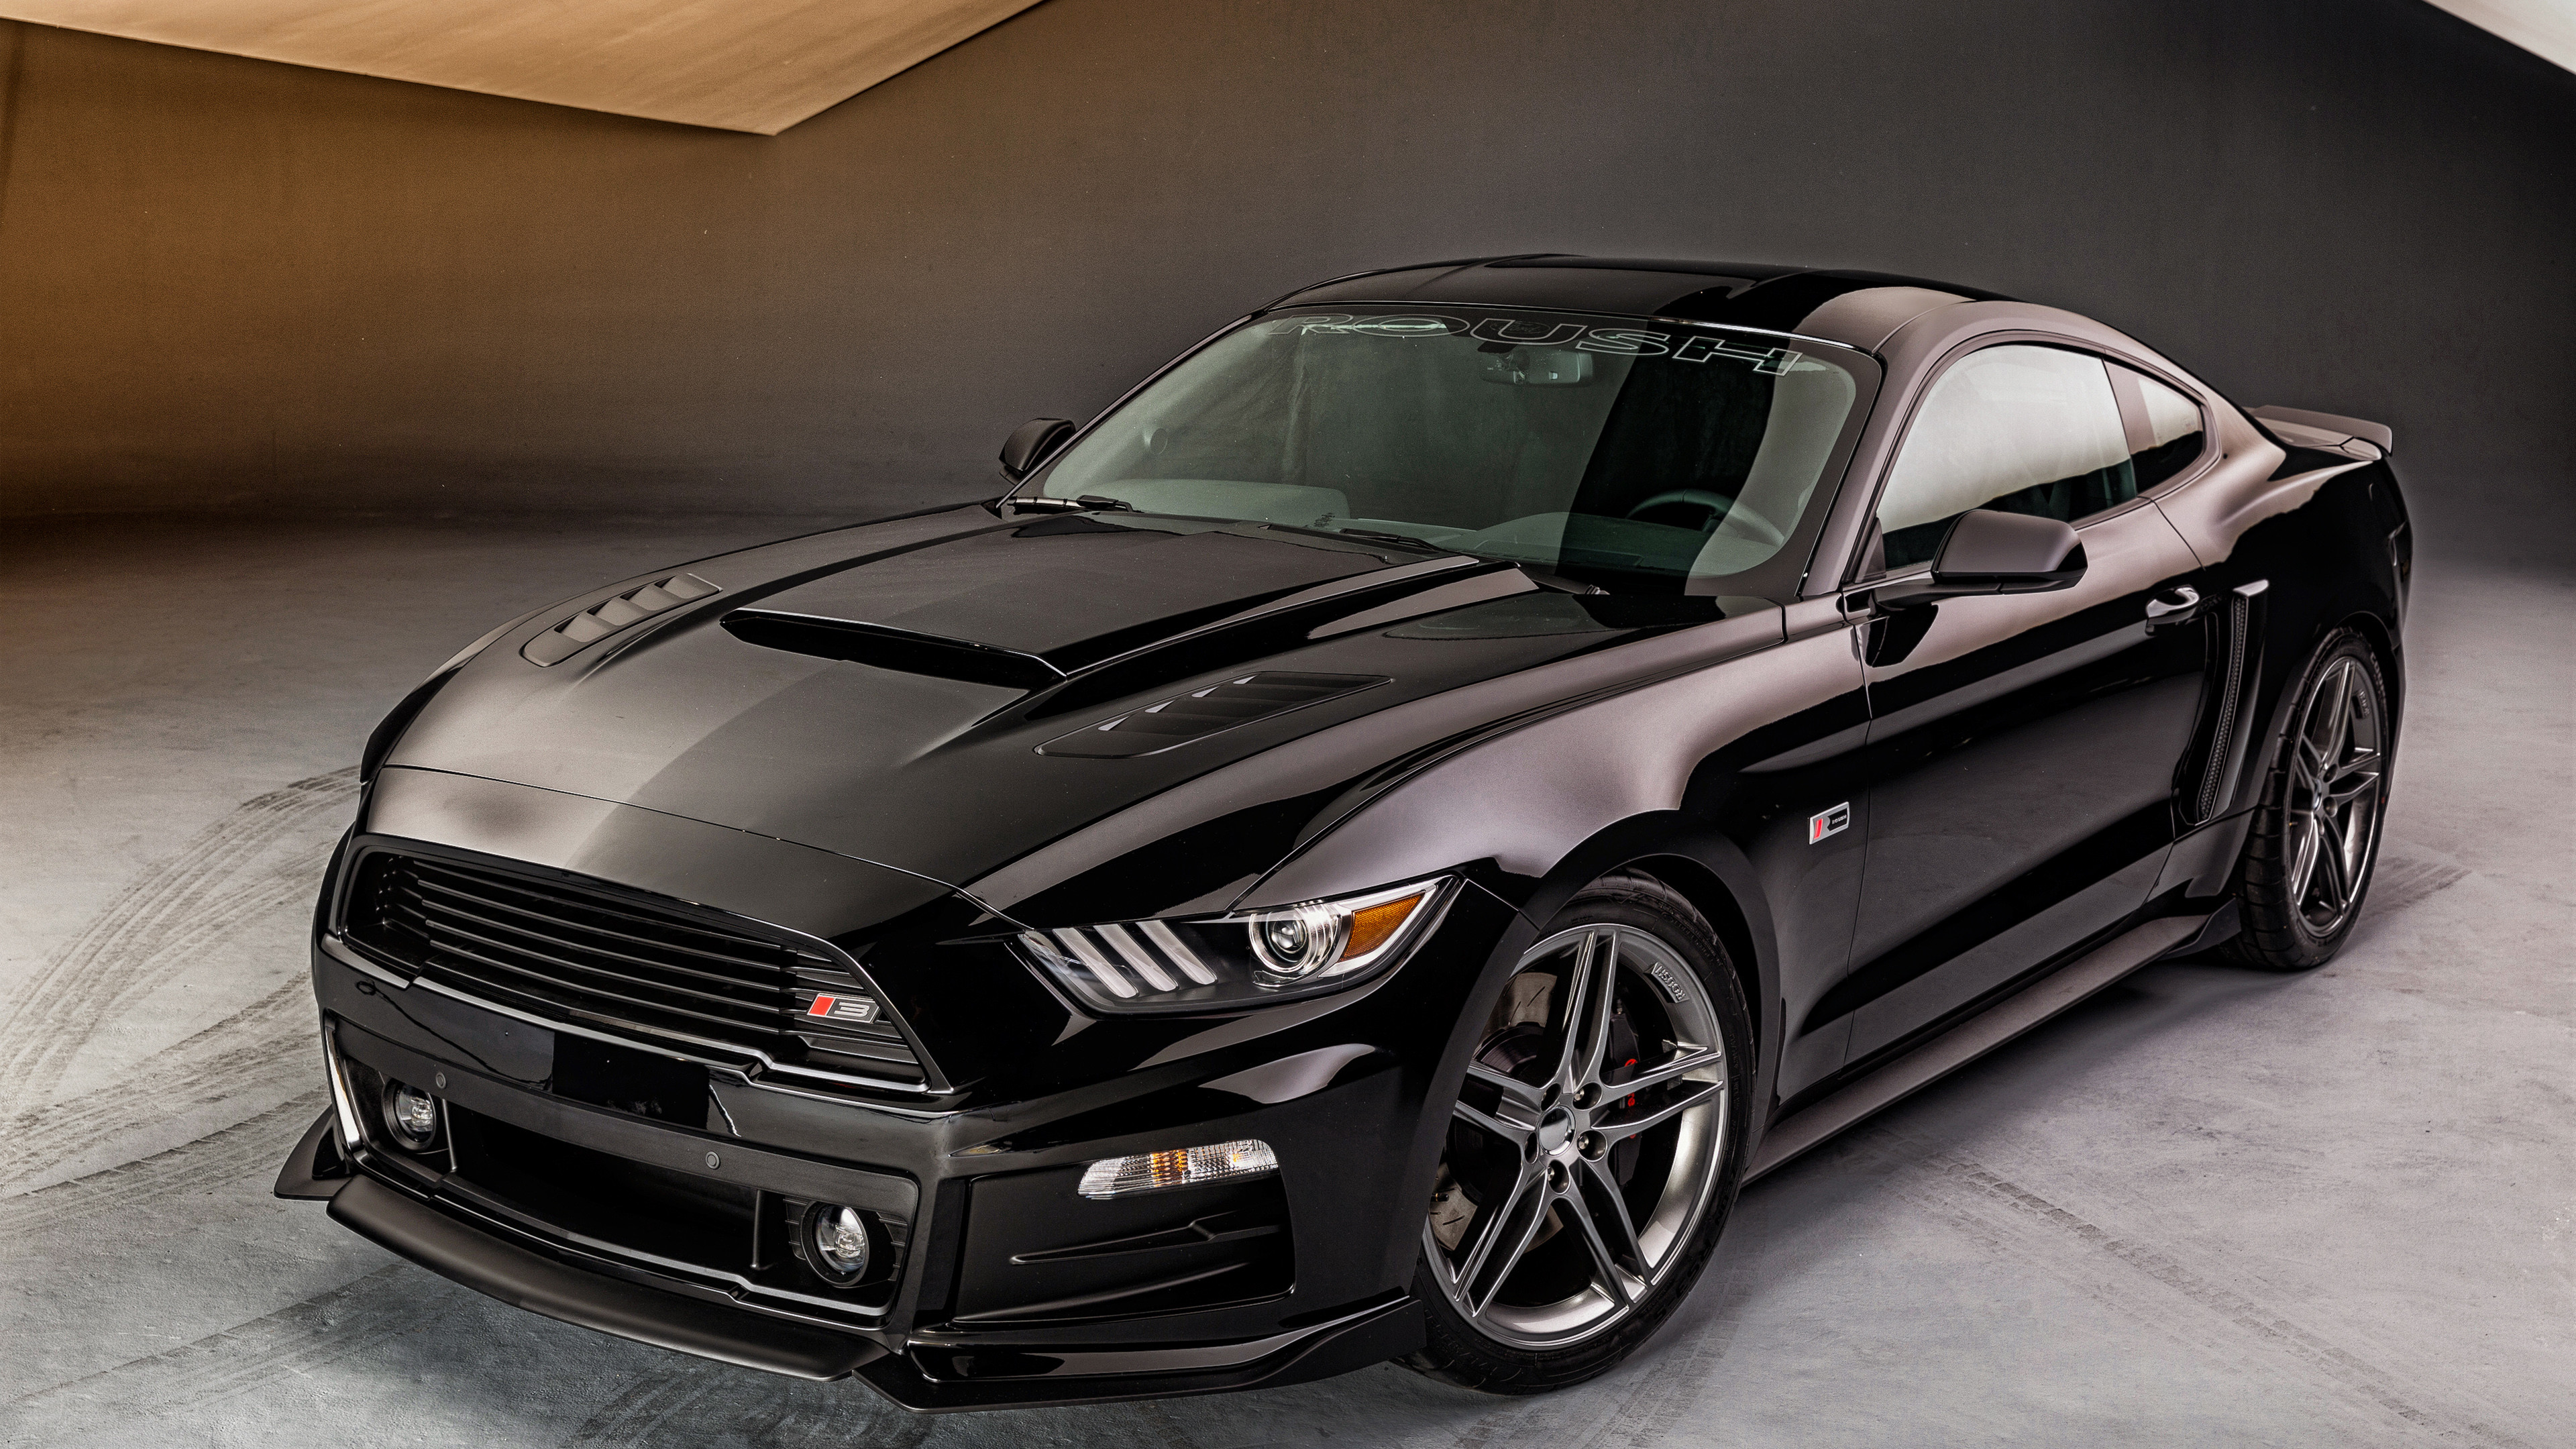 Ford Mustang Backgrounds 76 Pictures